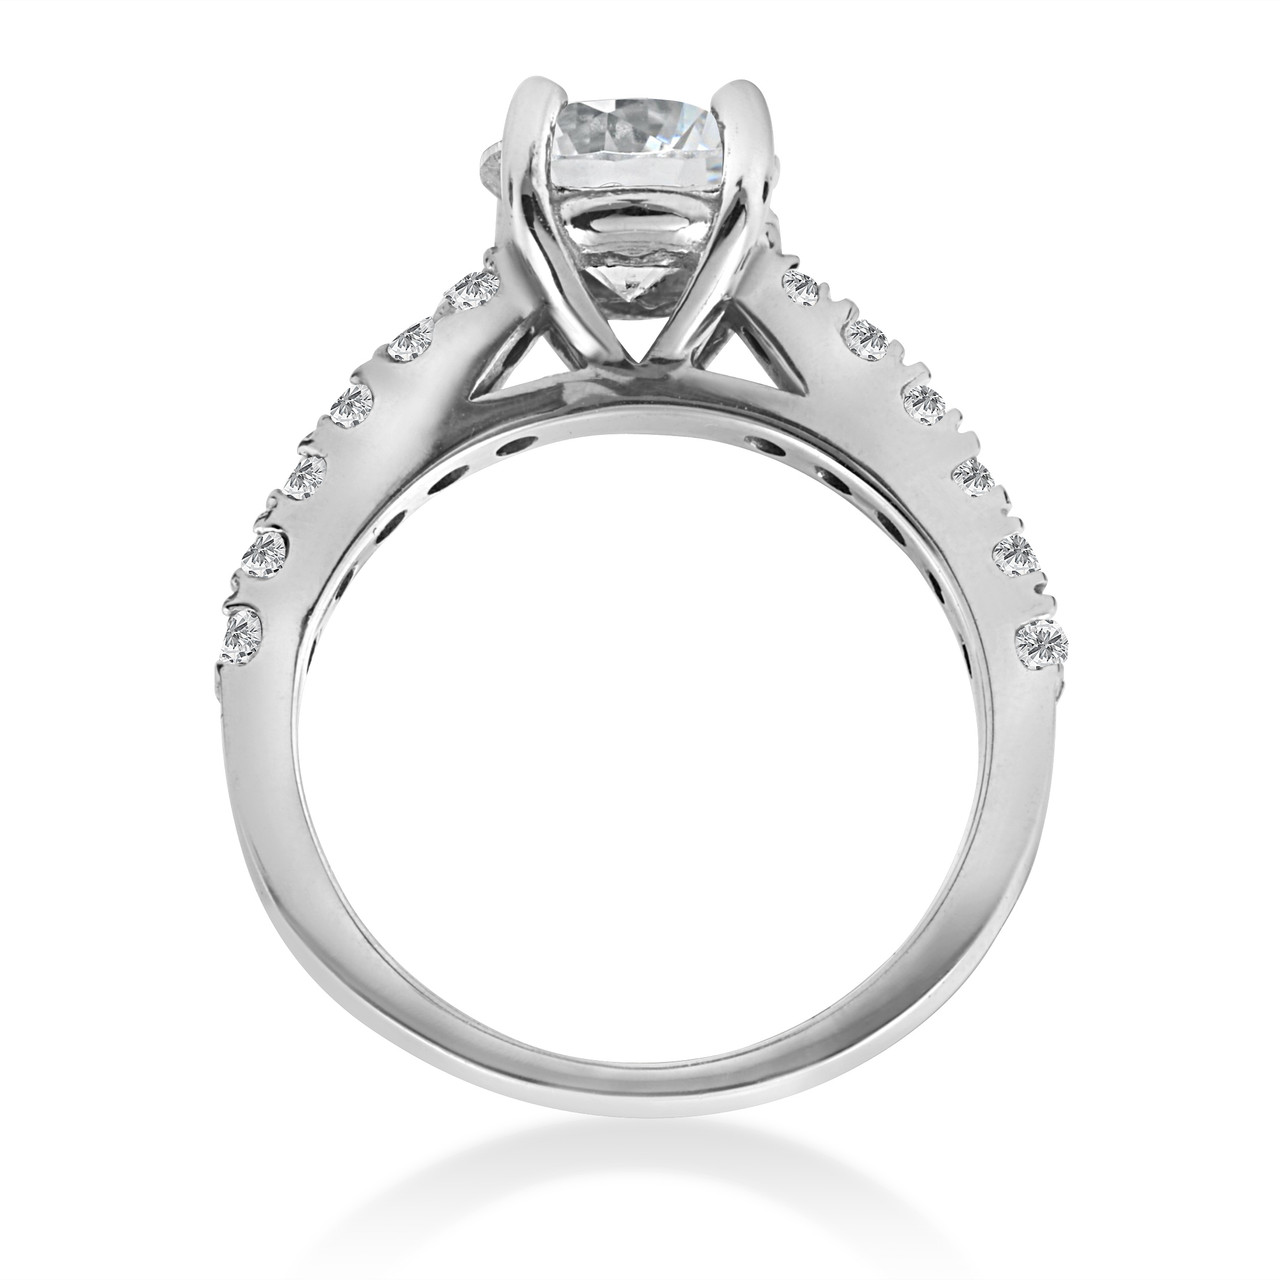 design ideas india price diamond extraordinary carat new ring wonderful in goodness modern